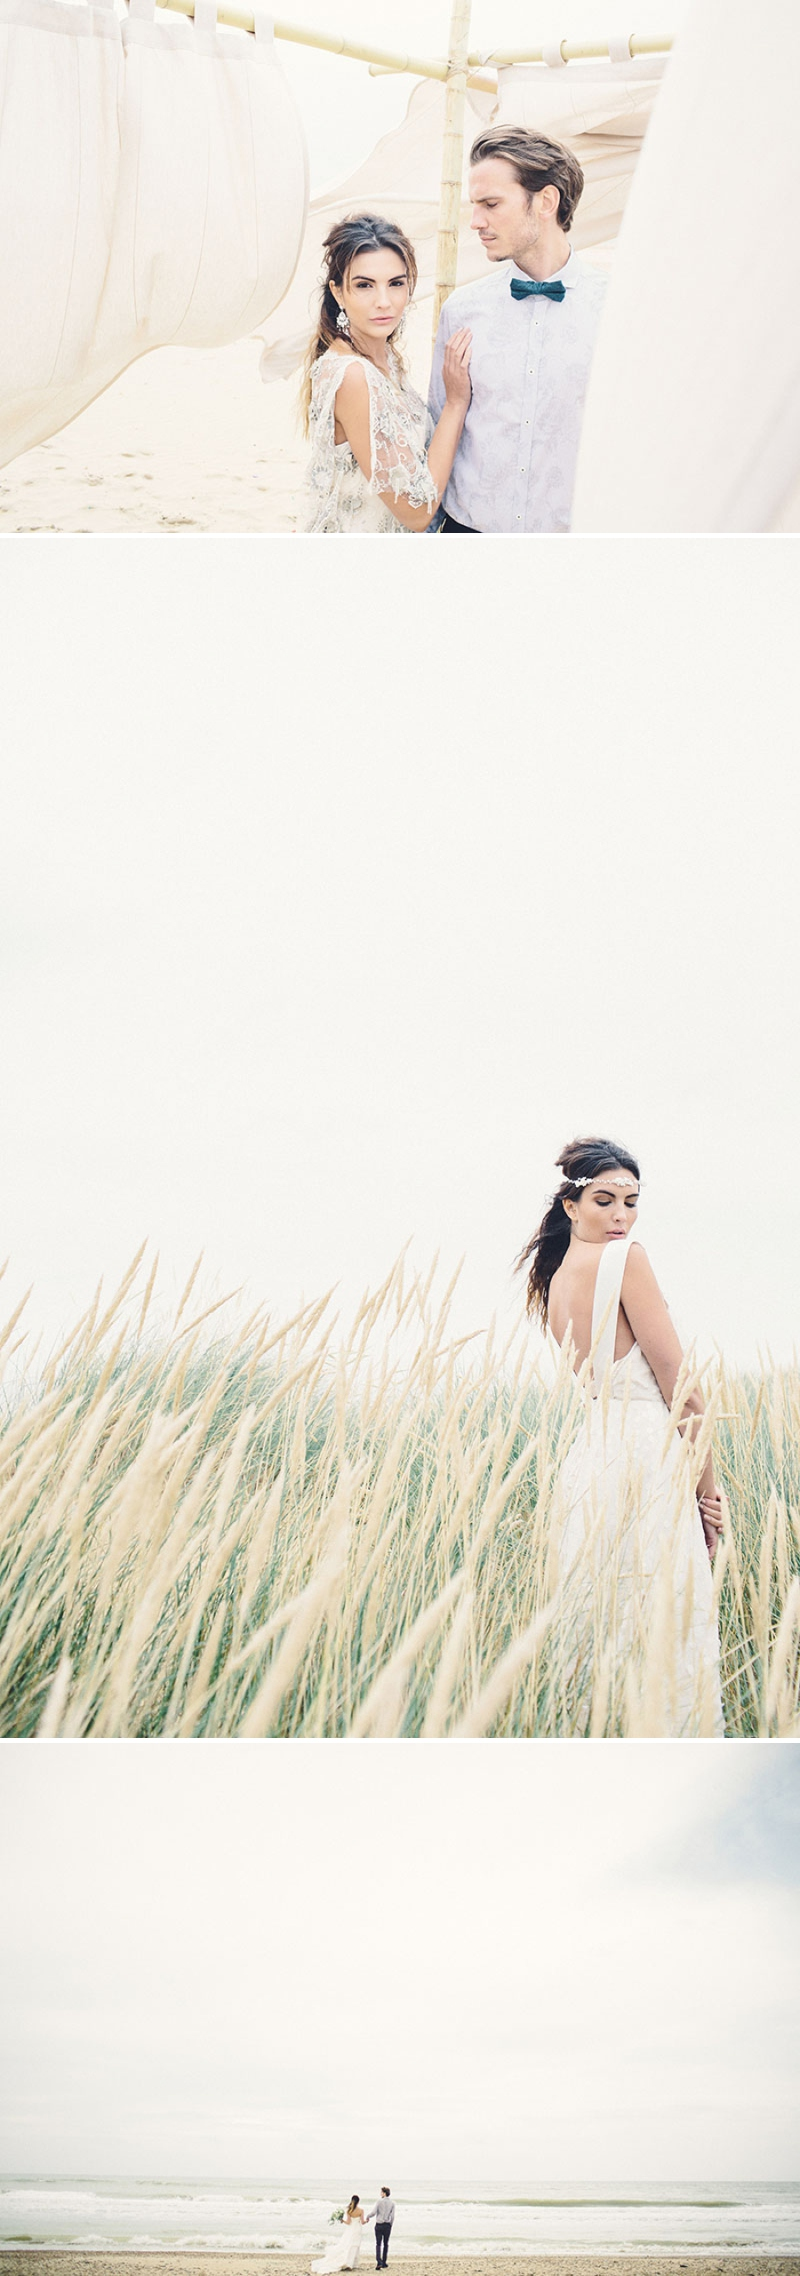 Mermaid wedding inspiration at Camber Sands by Gary Lashmar_0245